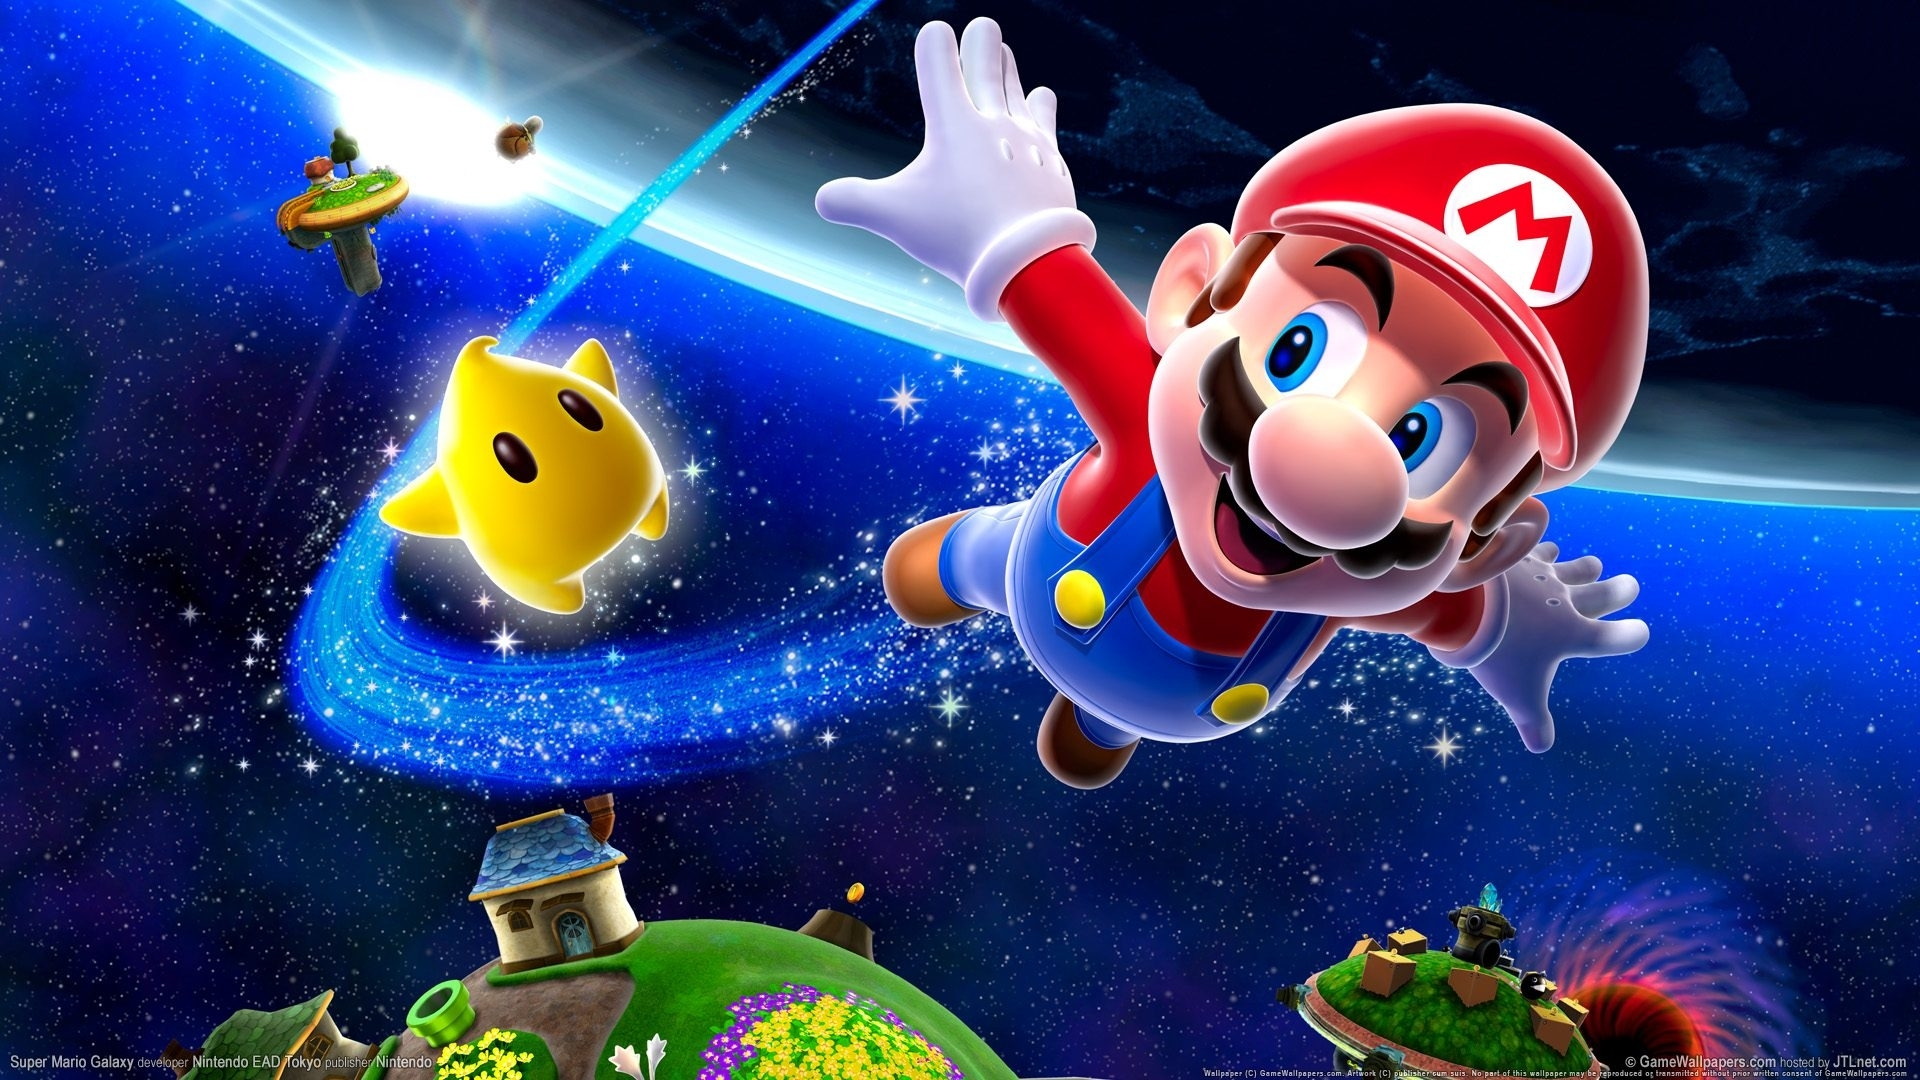 hd photo super mario galaxy wallpaper - hd wallpapers and desktop